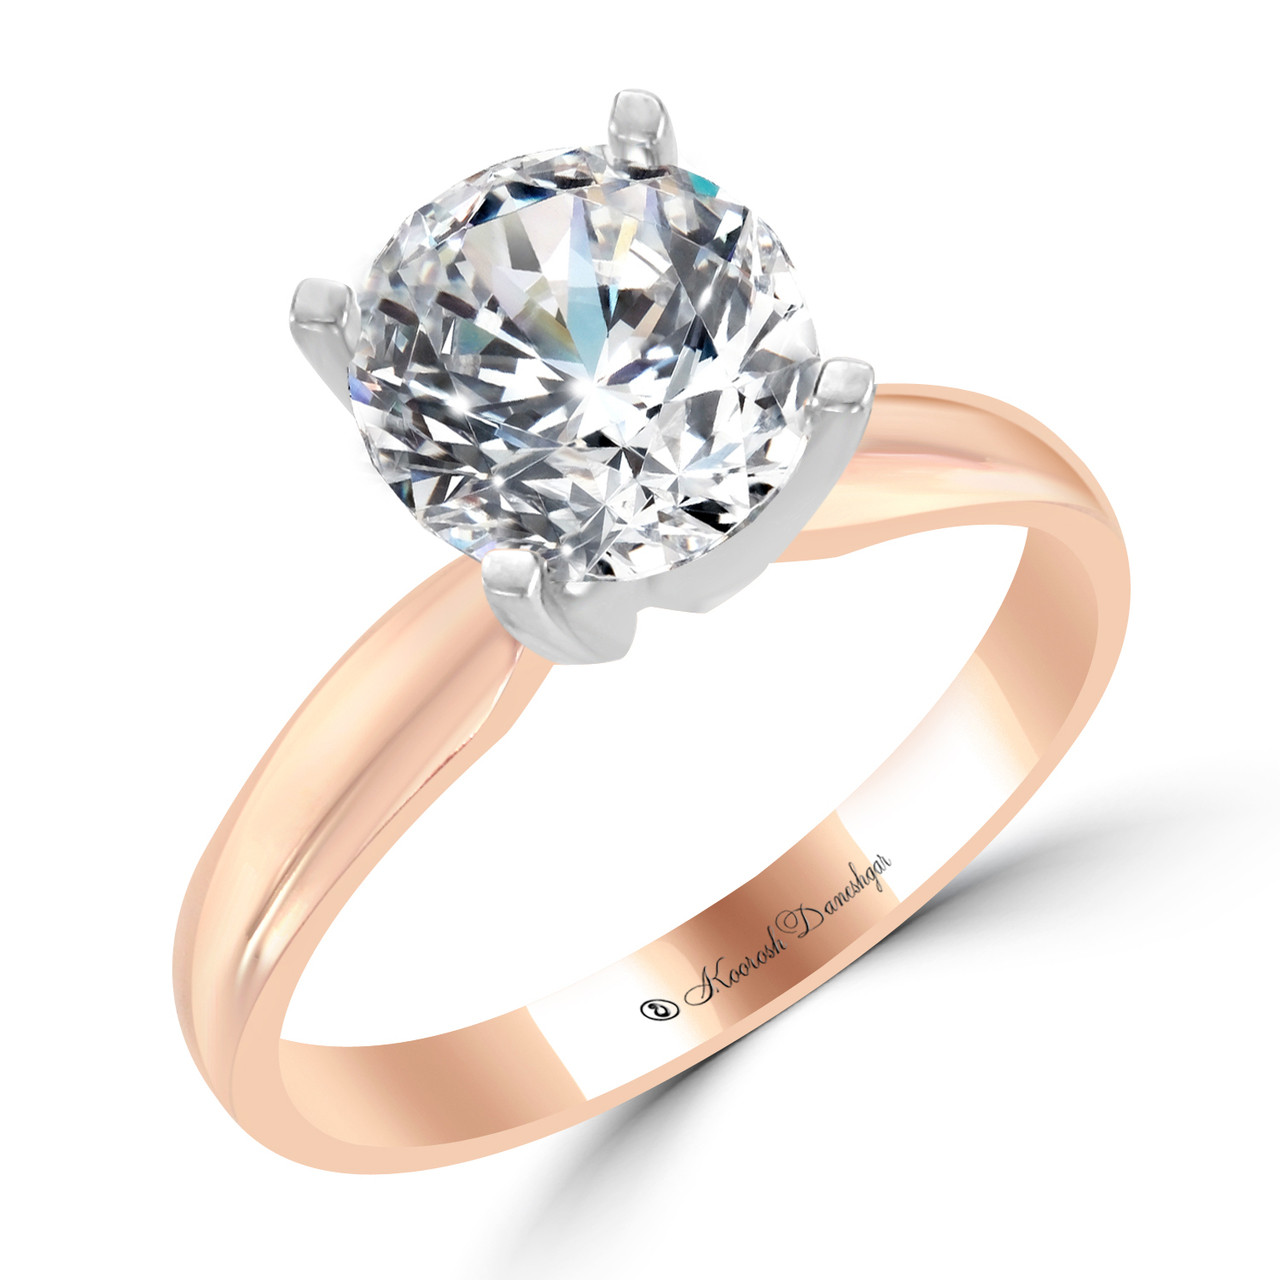 79a4b3ad3 14K Rose Gold Solitaire Engagement Ring with 14K White Gold Prongs - Vega  Style